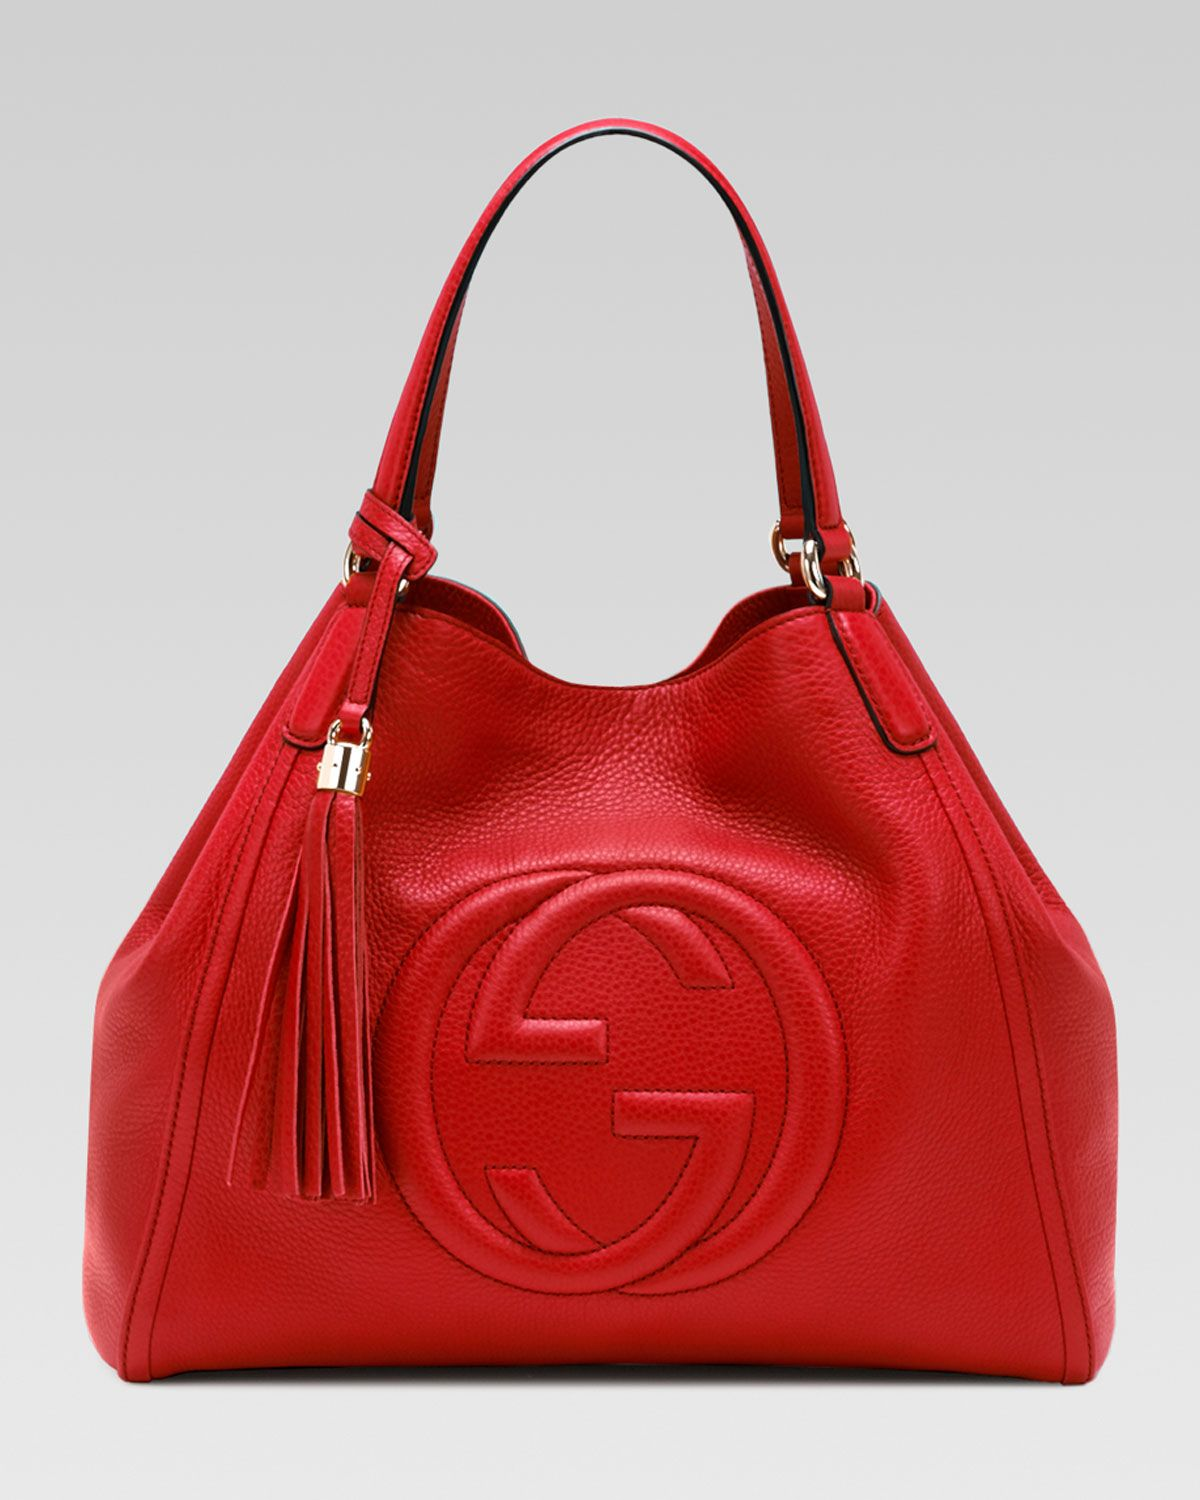 134182dd03d1e6 Soho Leather Shoulder Bag Red | ♫♪♫ I am what I wear and how I ...